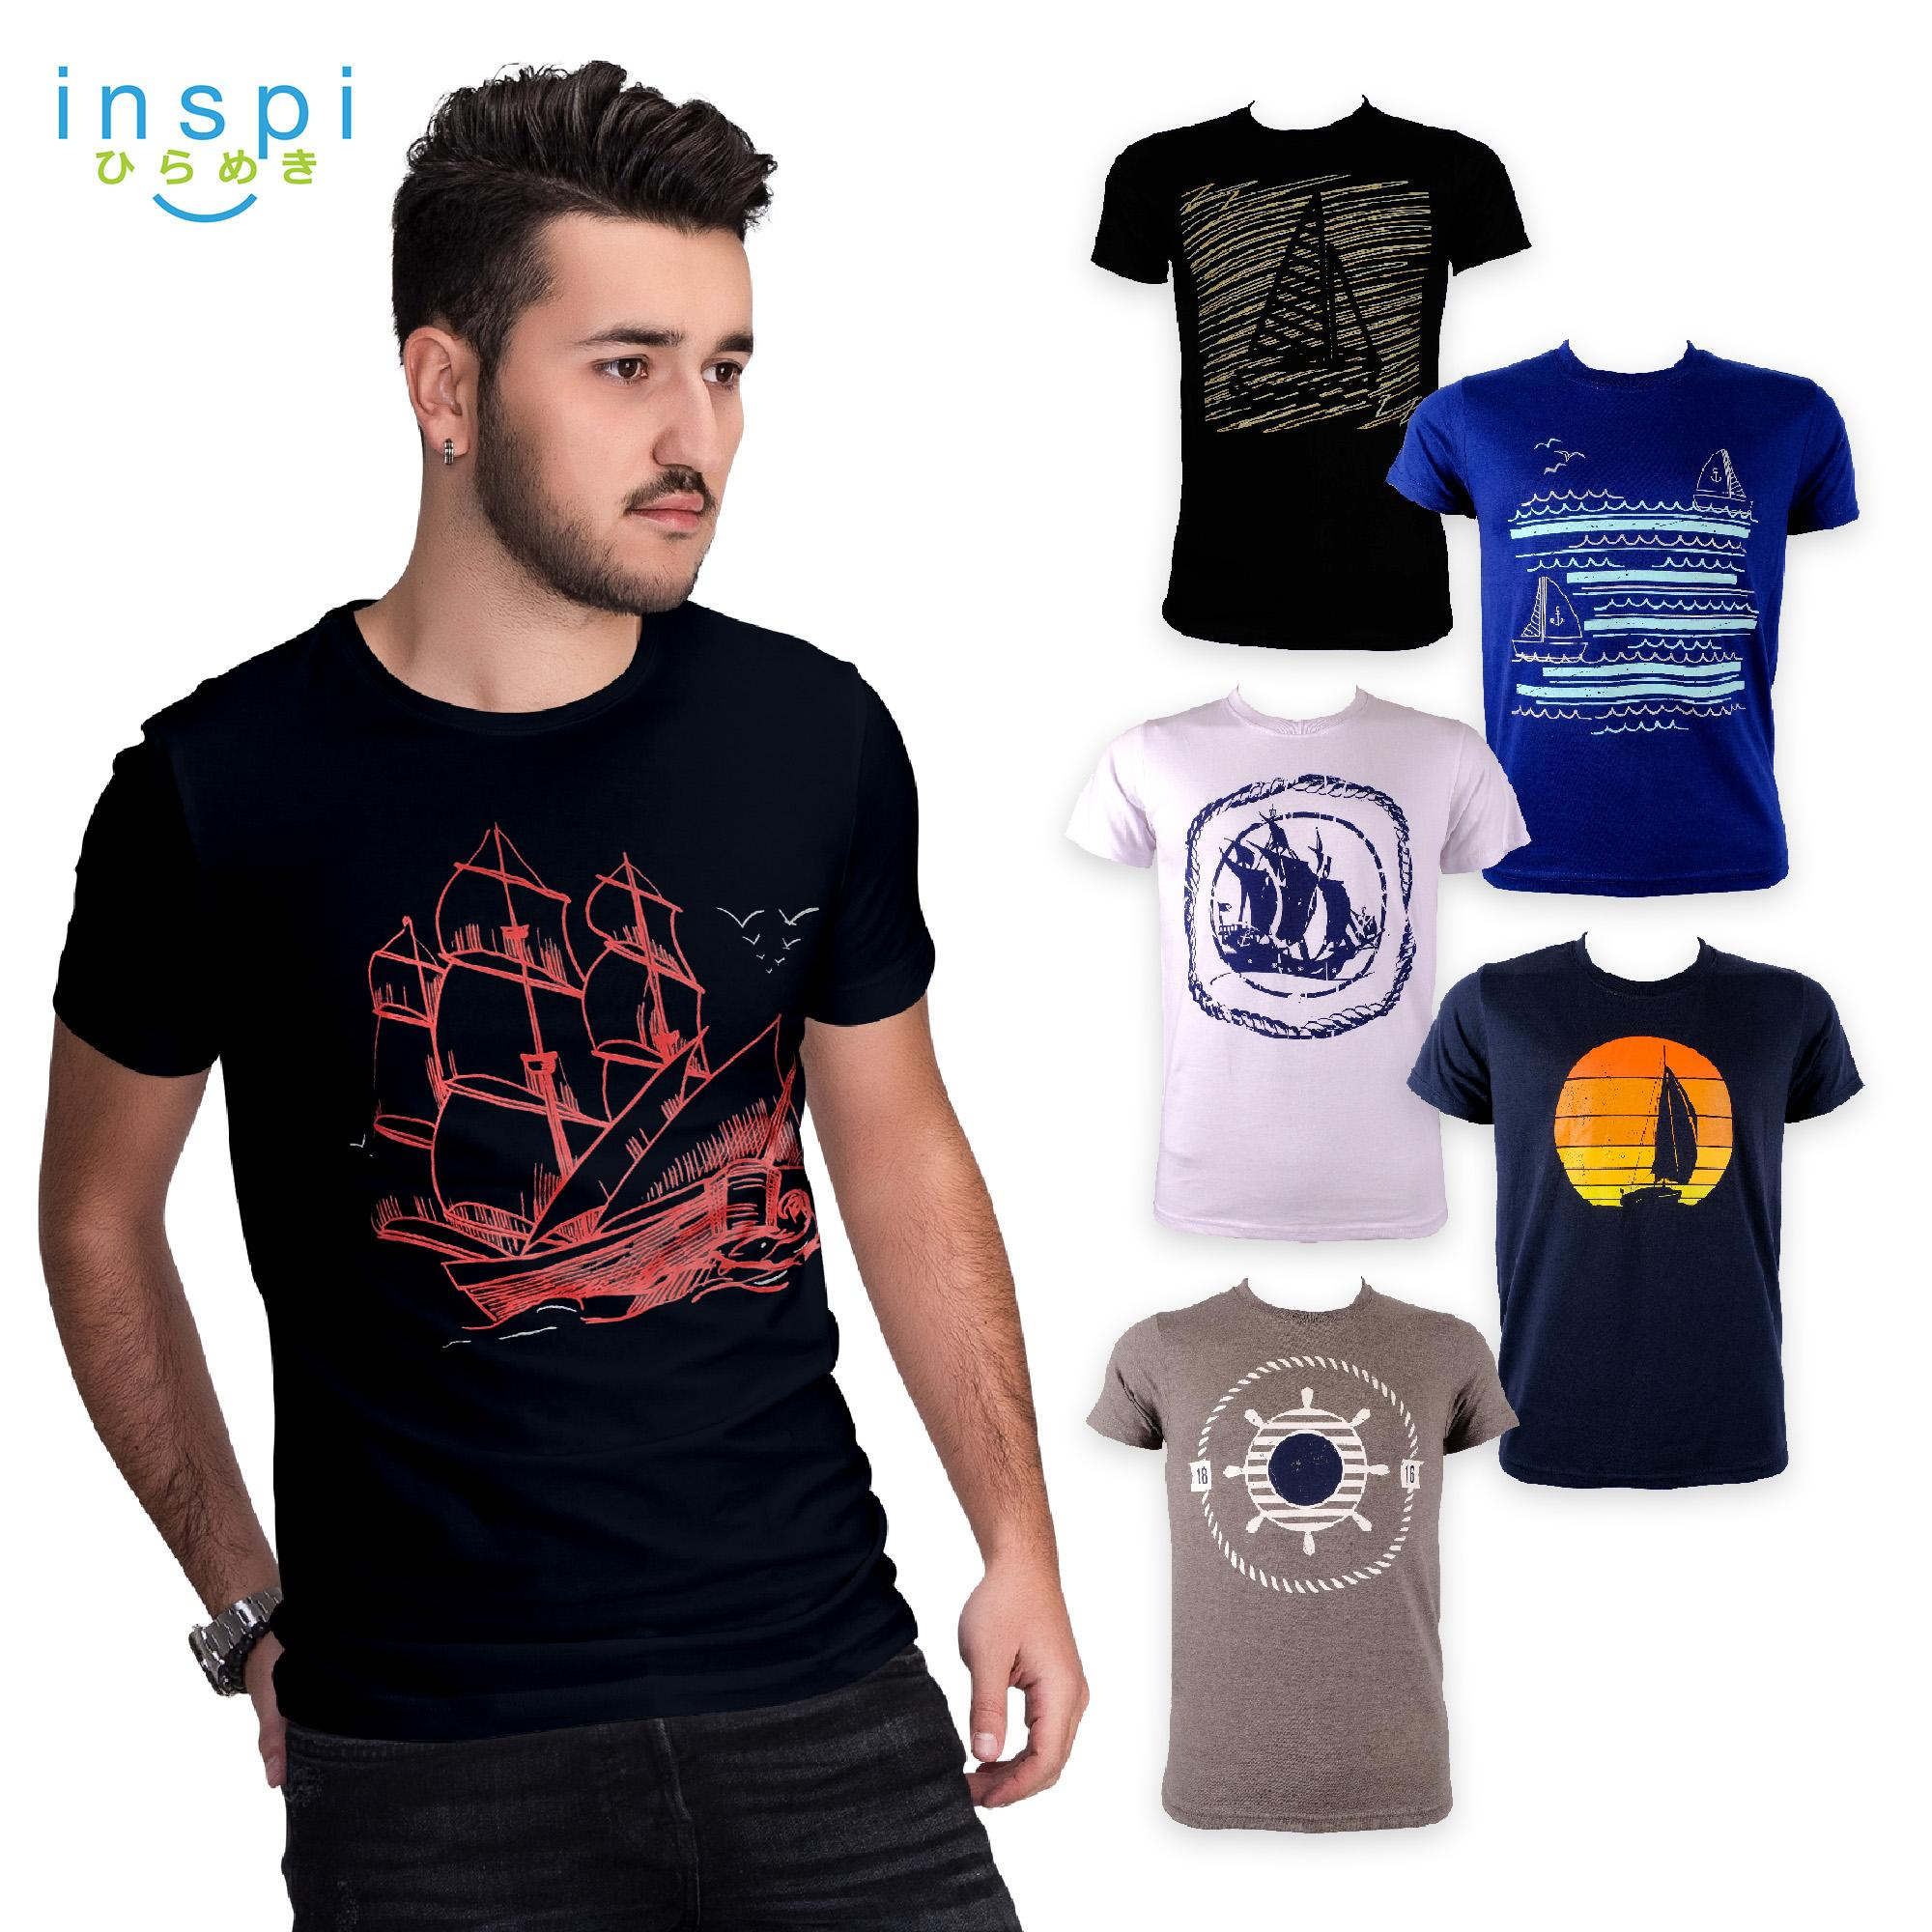 29e3354f8cc4ef INSPI Tees Sailing Collection tshirt printed graphic tee Mens t shirt shirts  for men tshirts sale